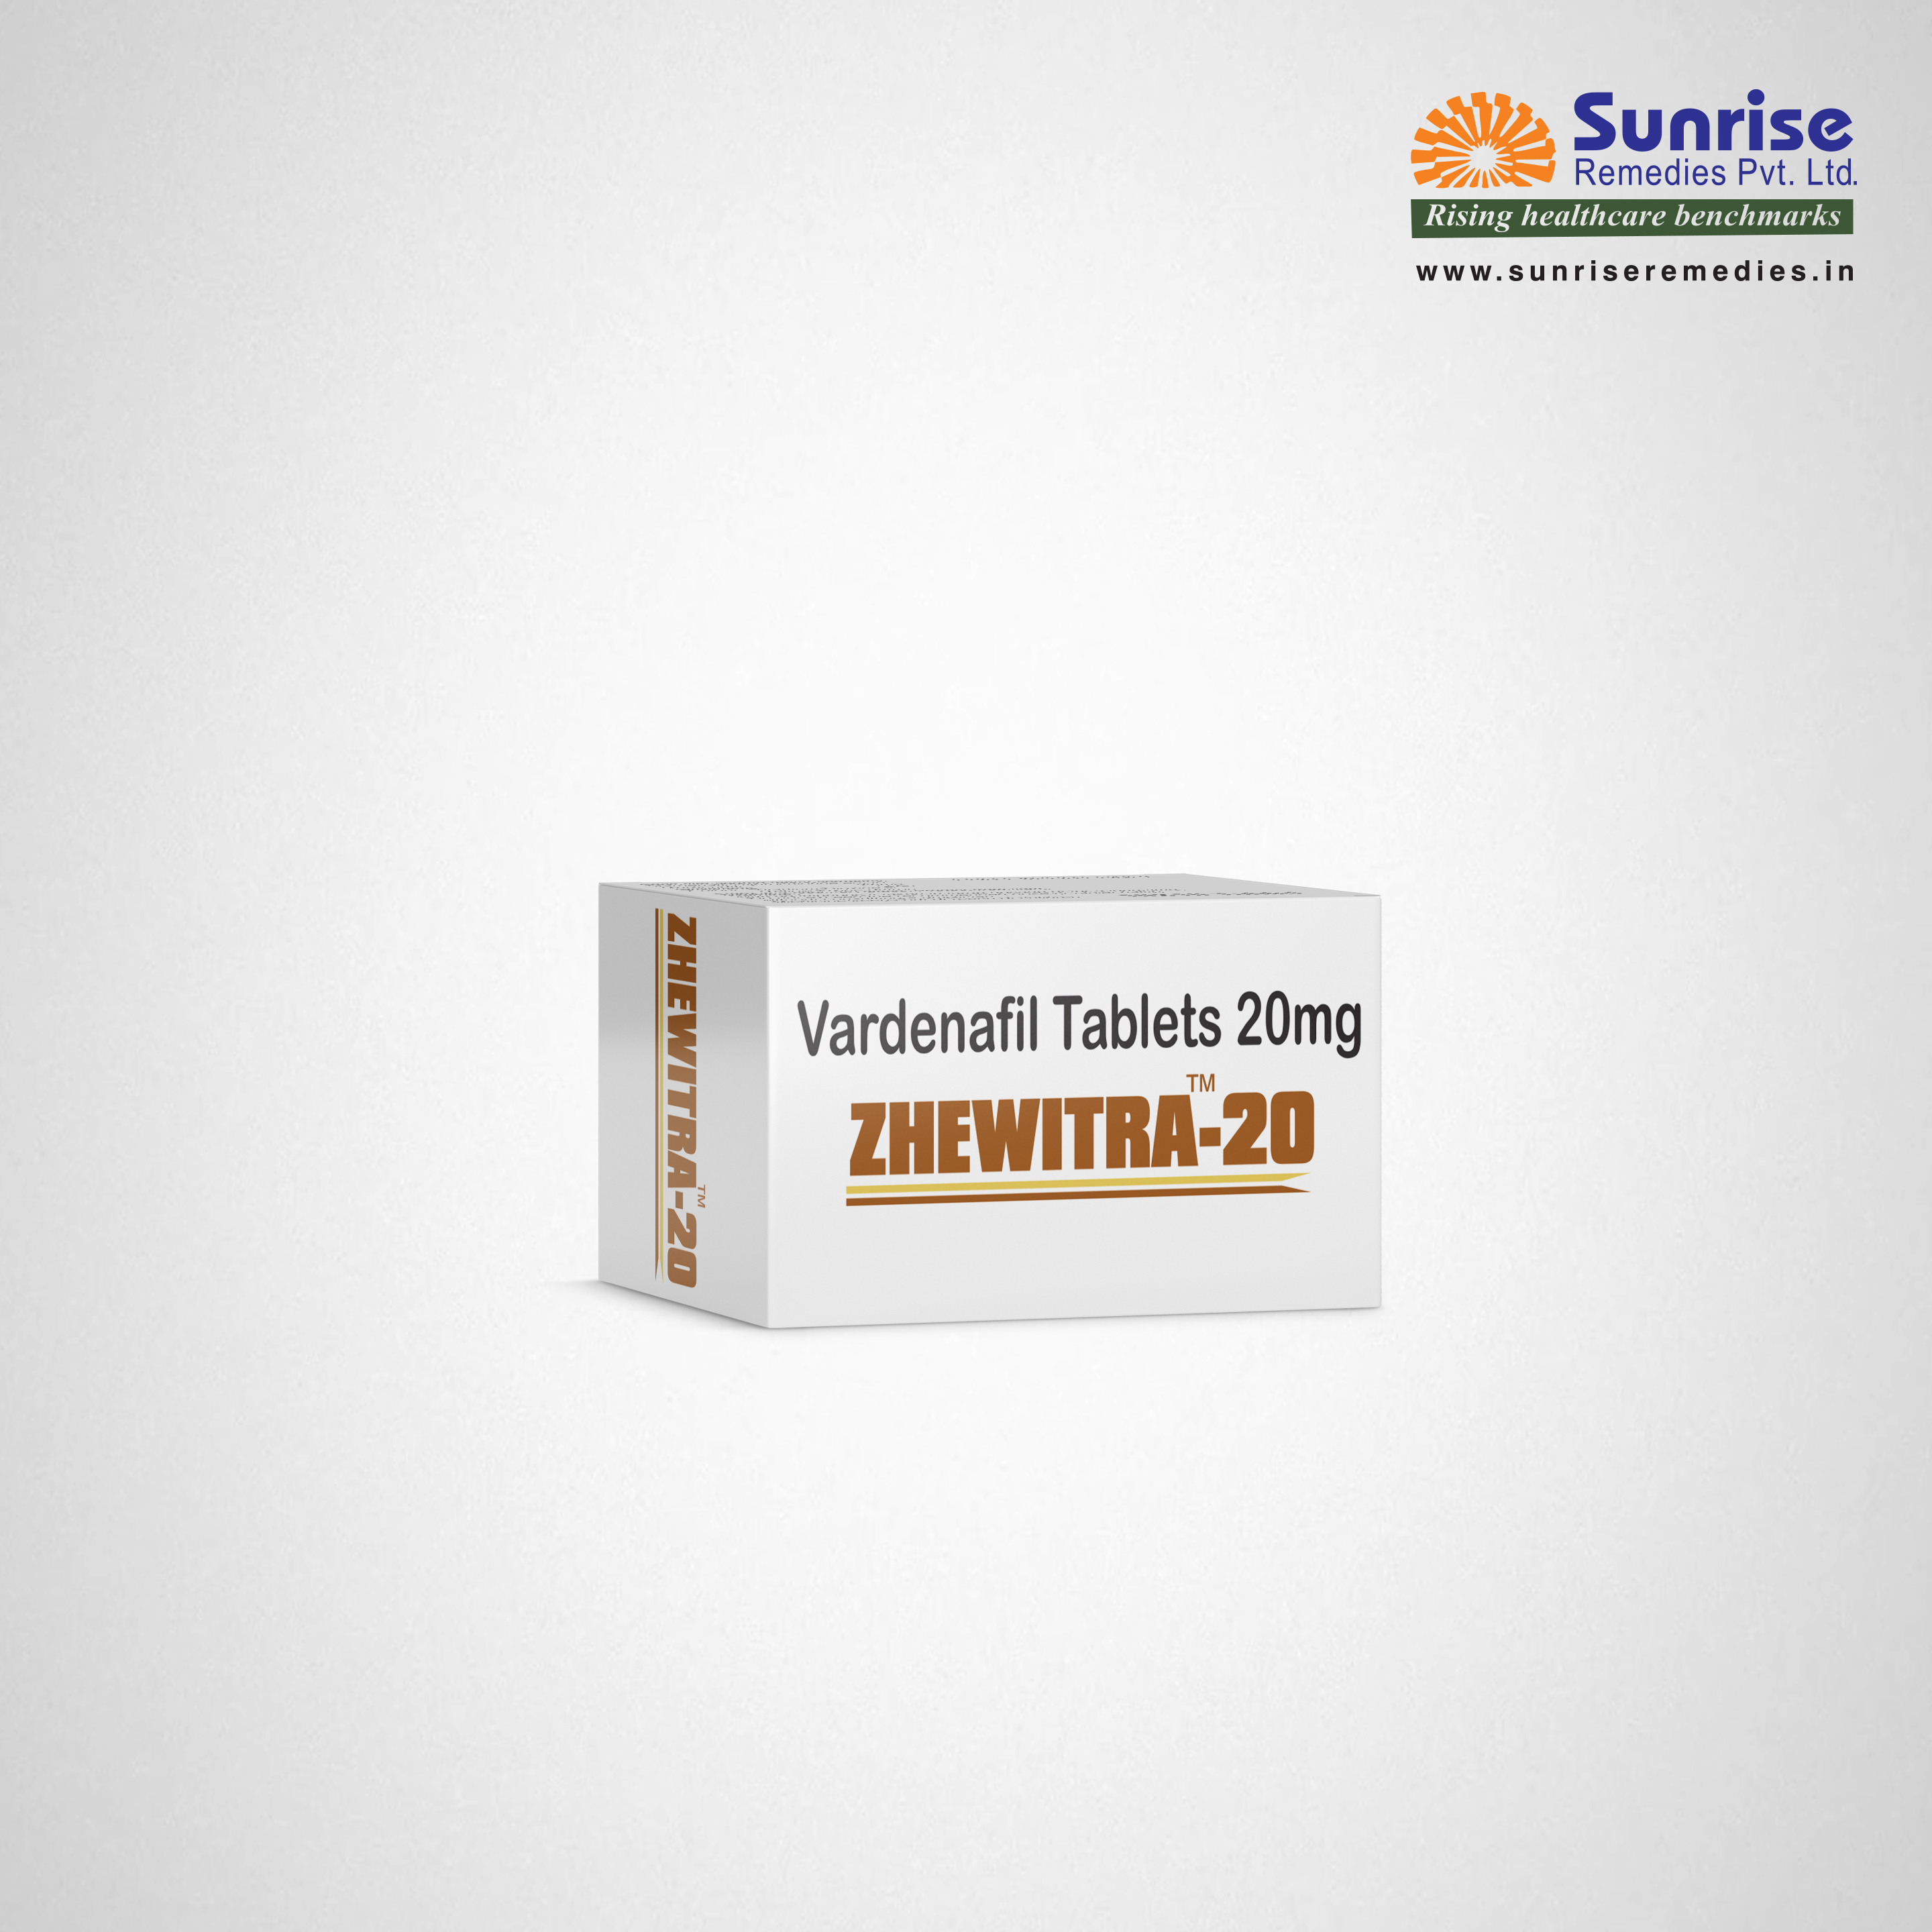 Zhewitra 20 | Vardenafil | SUnrise Remedies